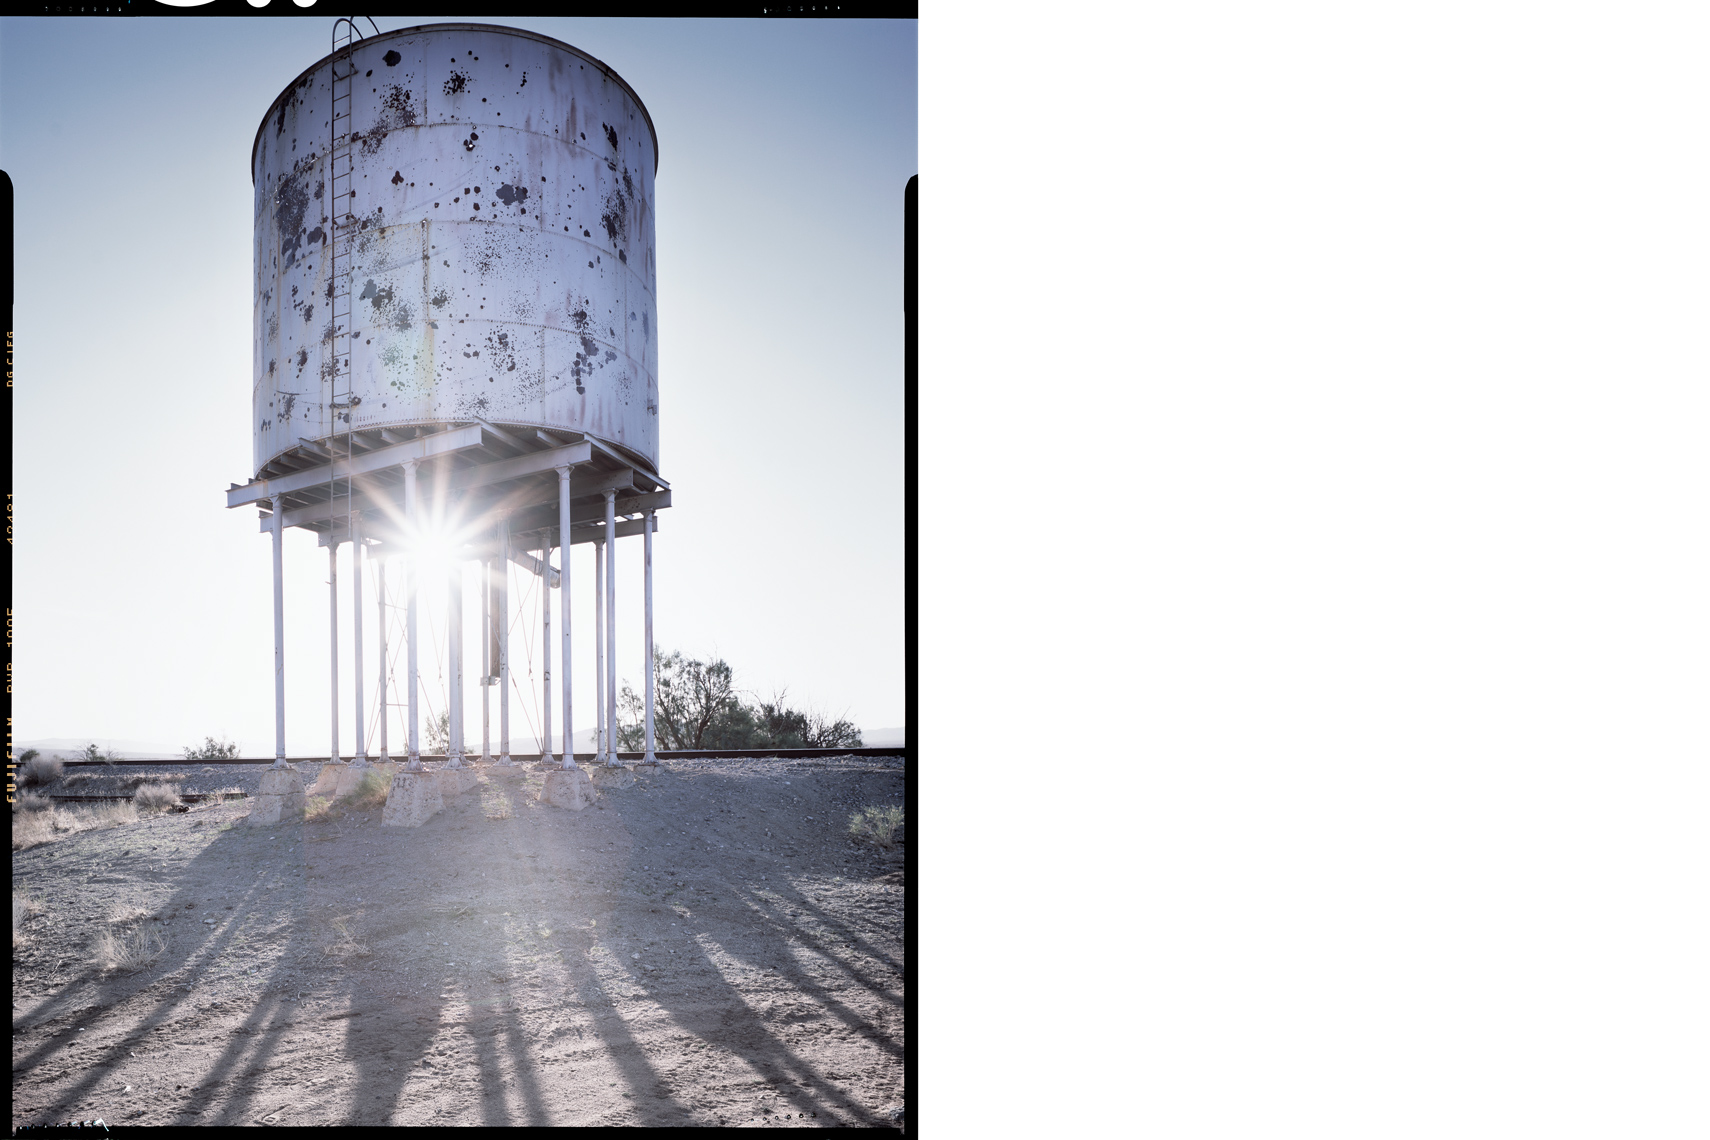 4x5_WaterTower_WEB.jpg